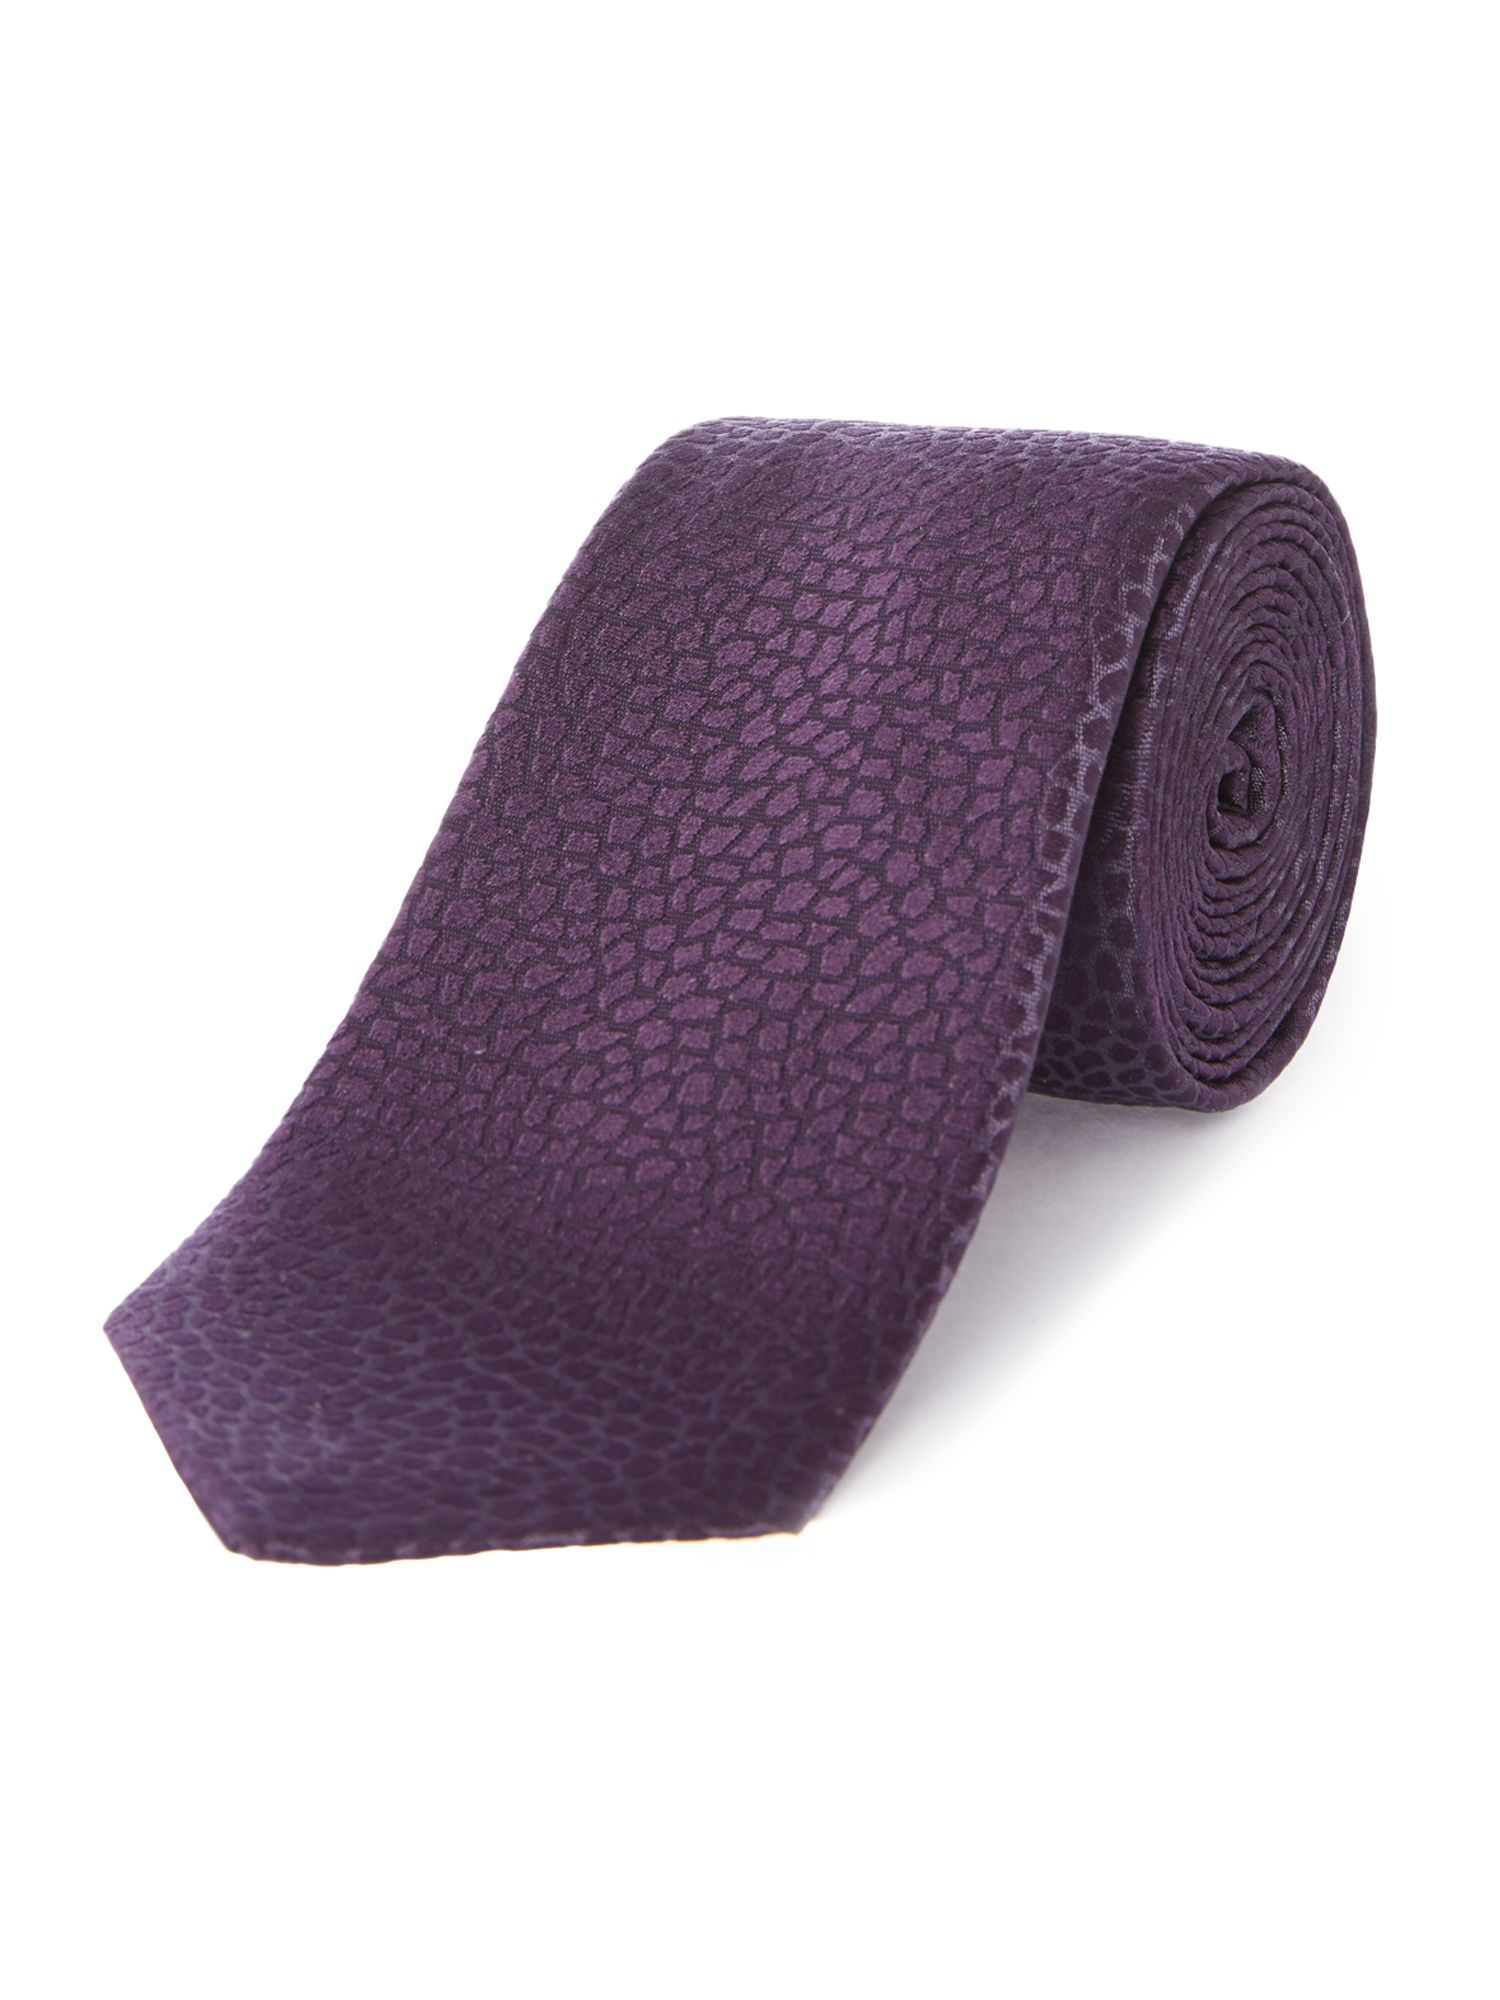 Bainbridge geo textured slim silk tie